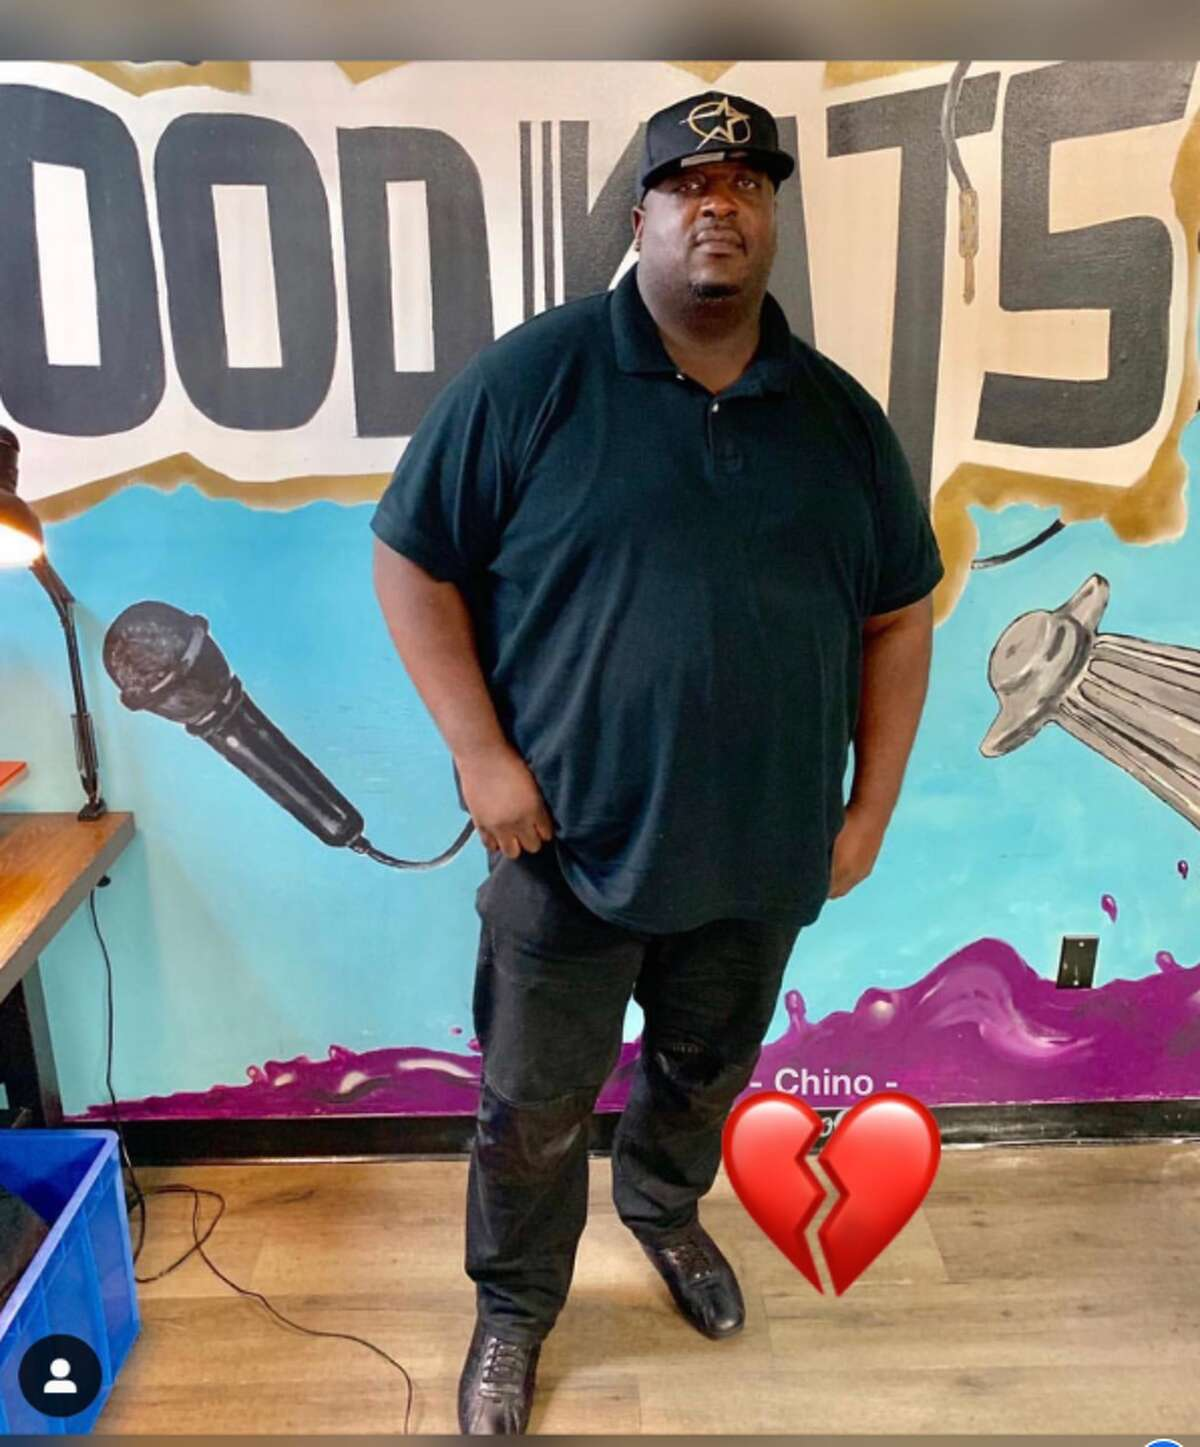 Jon Whitfield, a Houston rapper who frequently wrote for other artists, was killed Monday night at a recording studio in Houston. His daughter described him as a loving and supportive father. She doesn't know why someone would fatally shoot him multiple times during an apparent robbery.